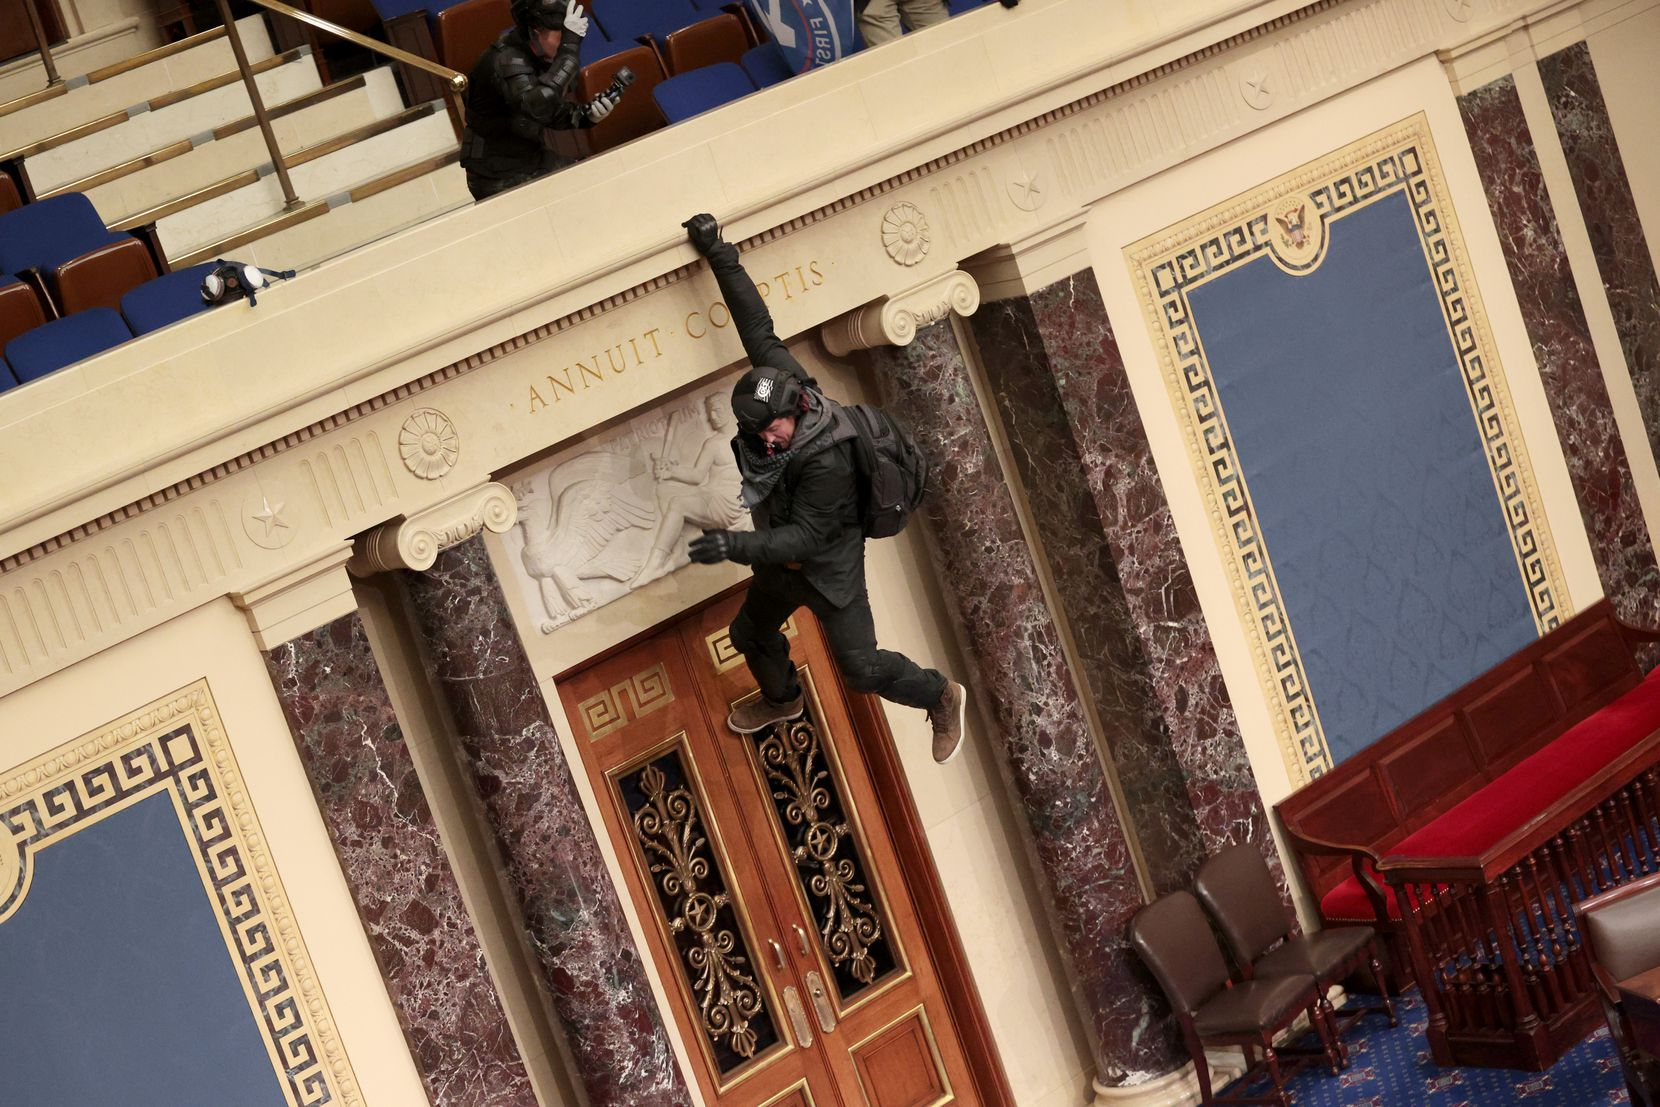 WASHINGTON, DC - JANUARY 06: A protester is seen hanging from the balcony in the Senate Chamber on January 06, 2021 in Washington, DC. Congress held a joint session today to ratify President-elect Joe Biden's 306-232 Electoral College win over President Donald Trump. Pro-Trump protesters have entered the U.S.   Capitol building after mass demonstrations in the nation's capital.